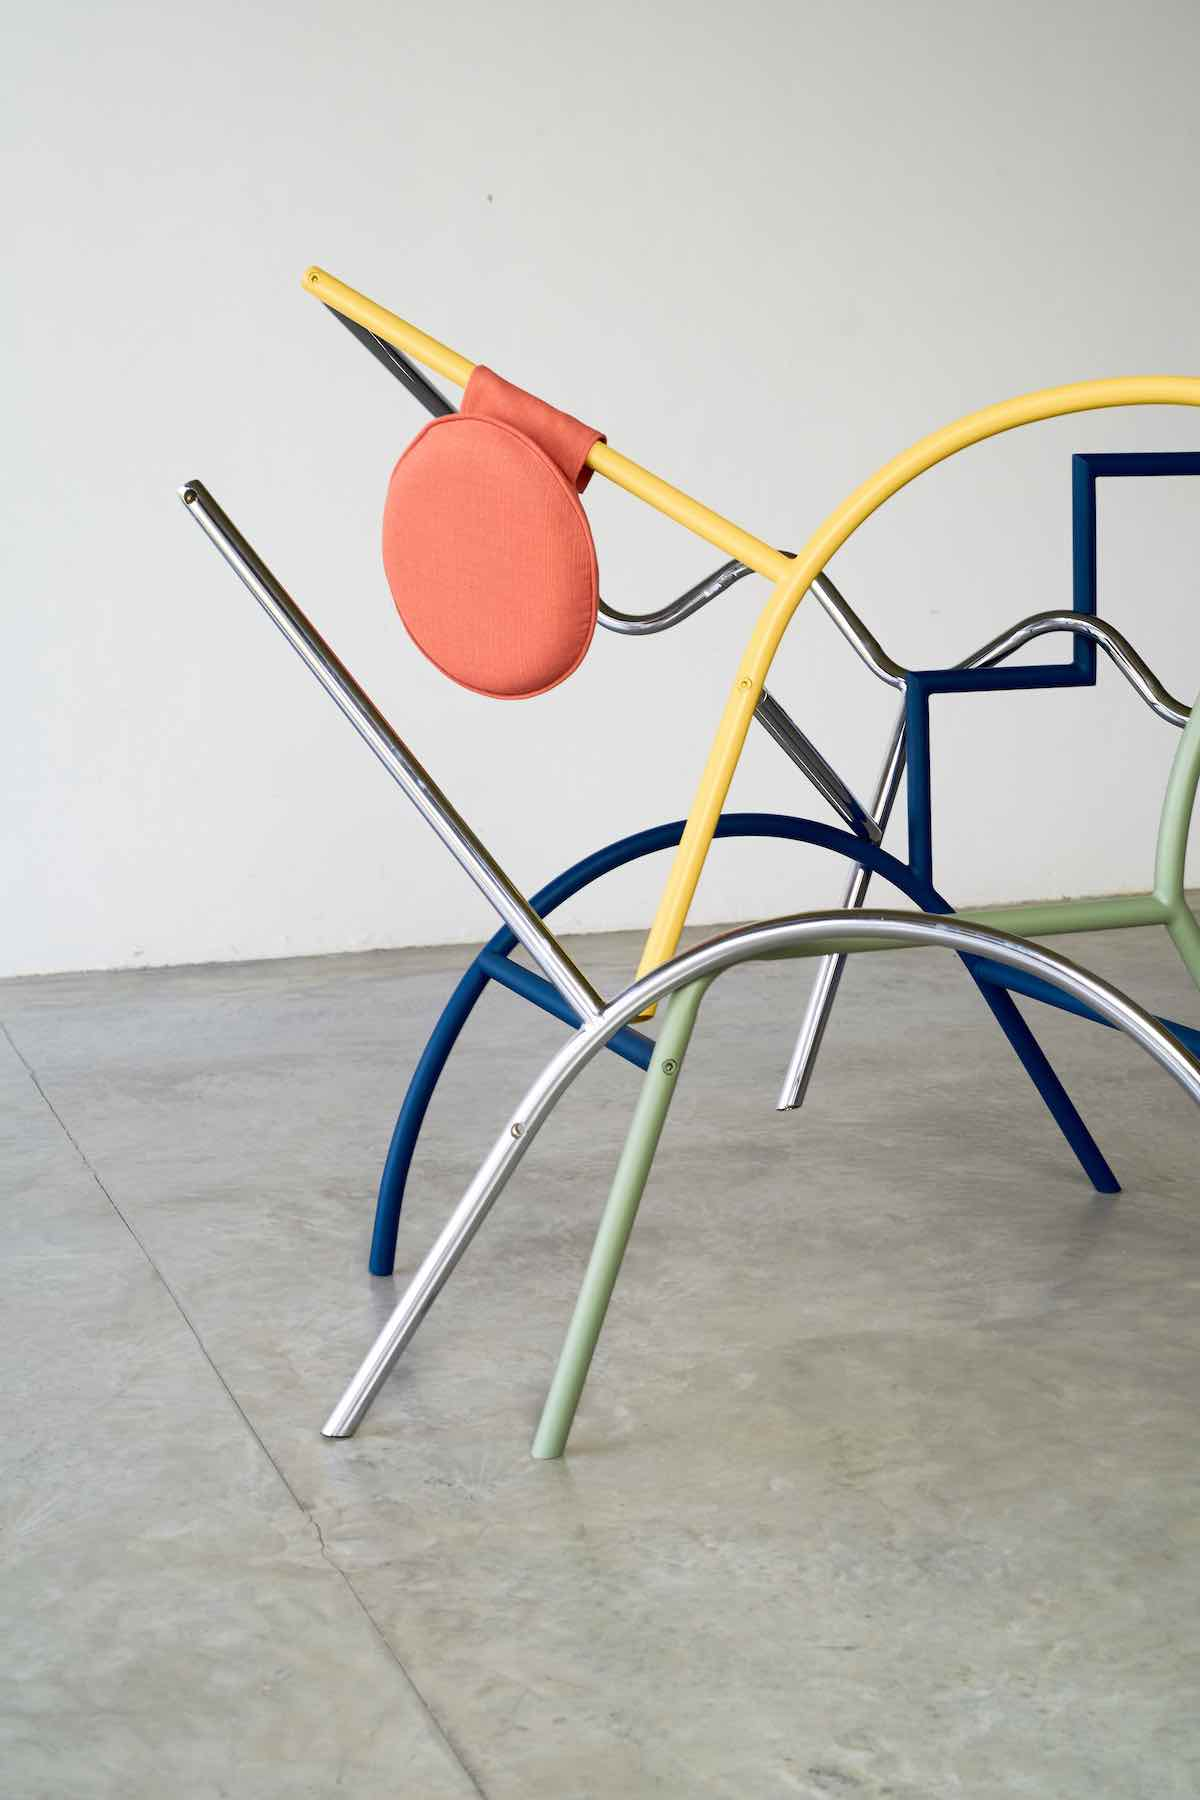 EBBA chair by KAOI and THINKK - Courtesy of KAOI.